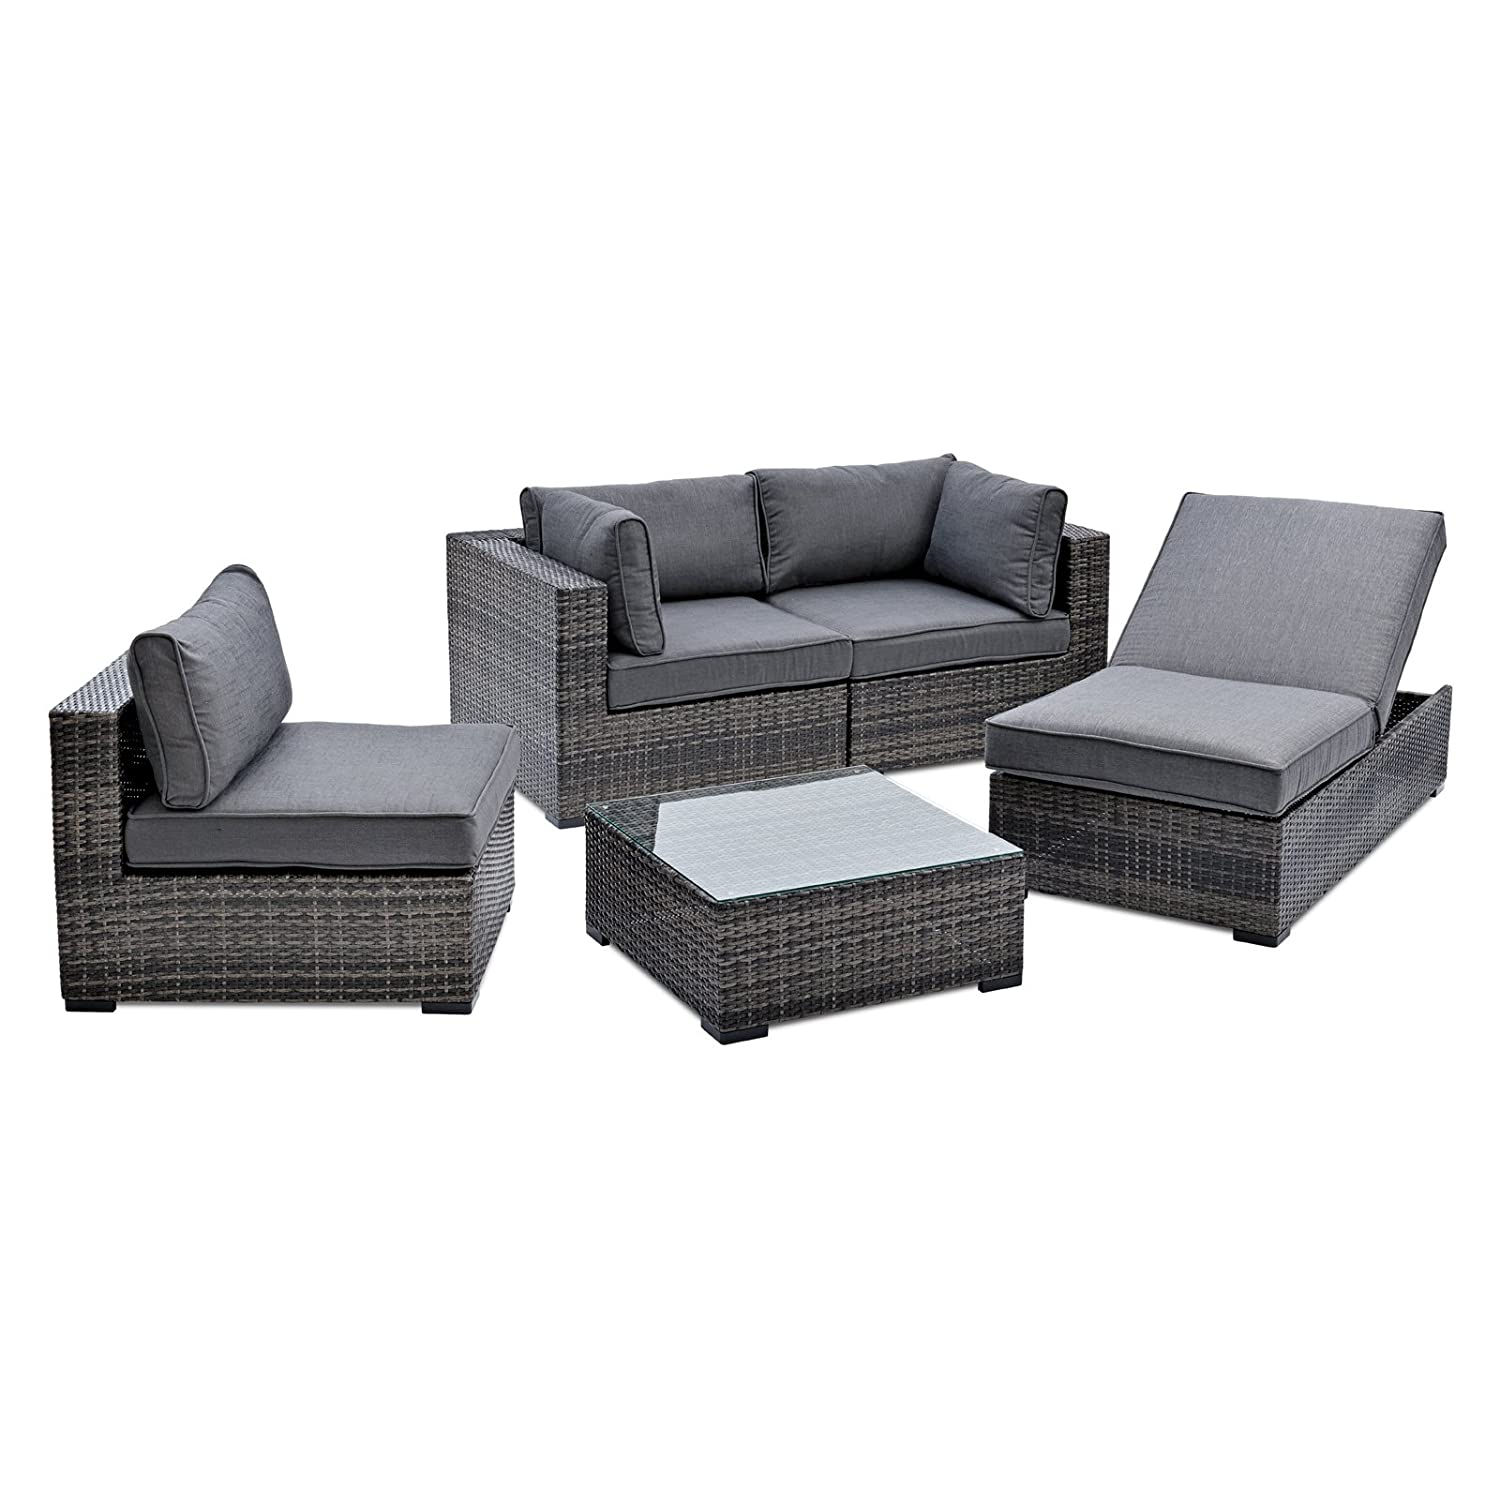 belardo tineola lounge set bestellen. Black Bedroom Furniture Sets. Home Design Ideas